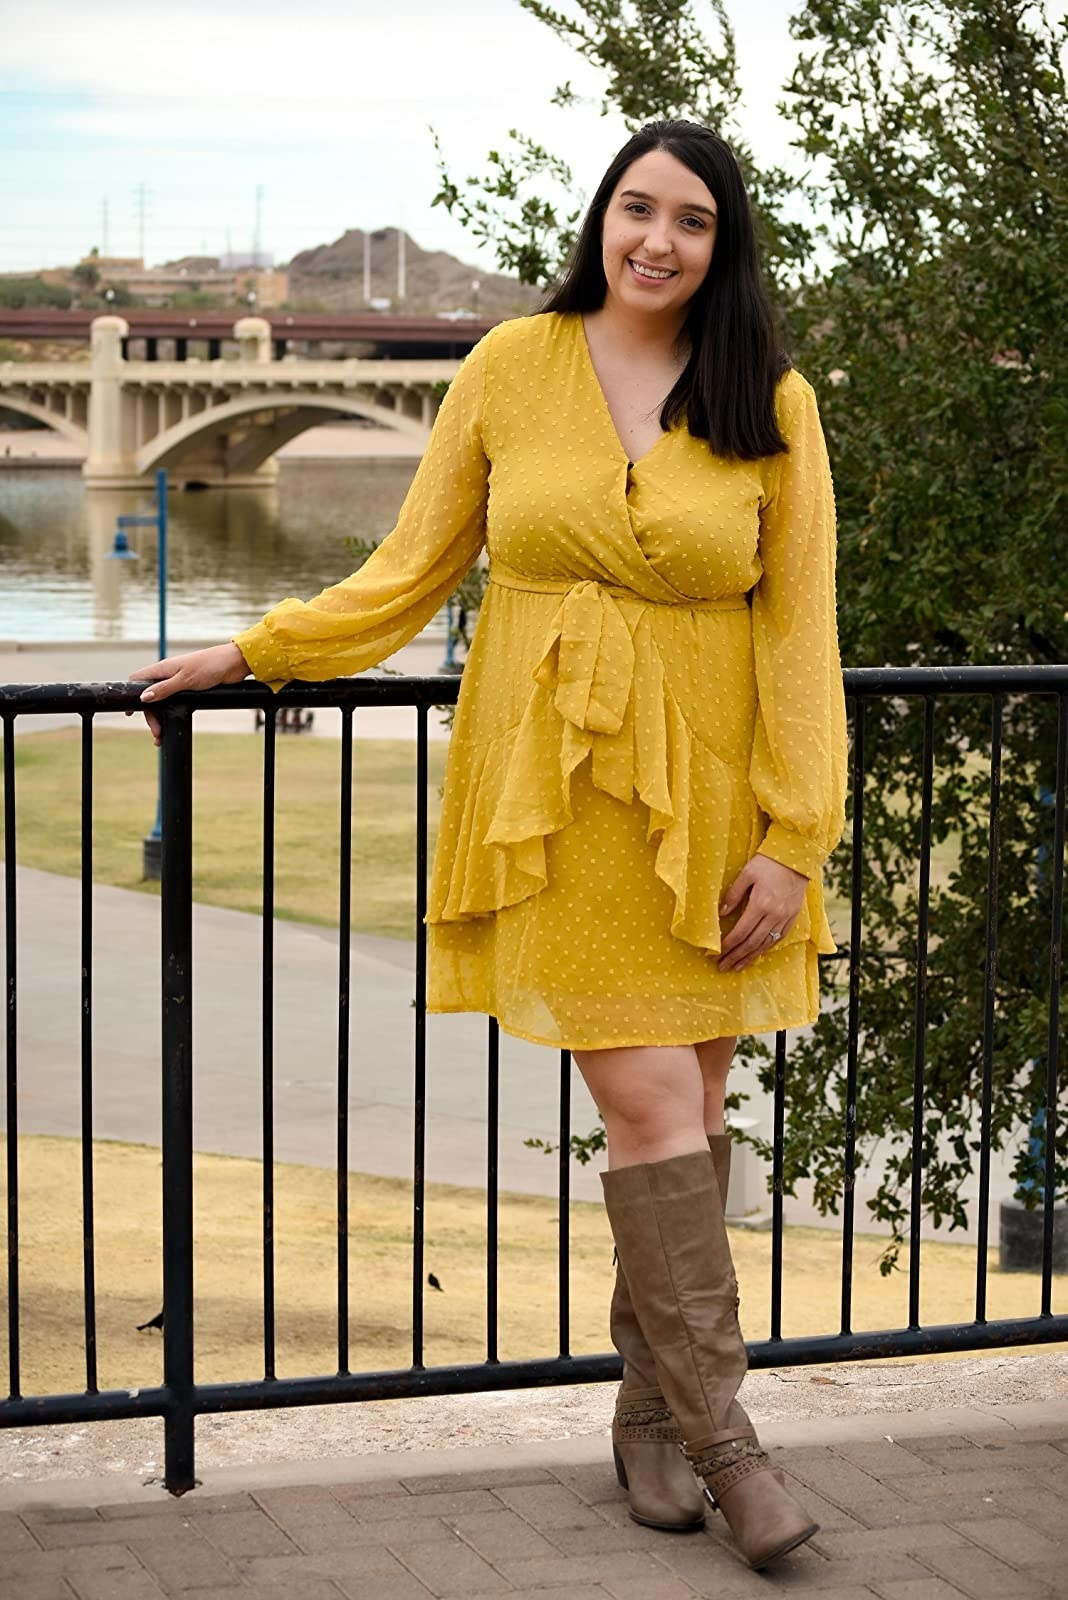 The dress in yellow